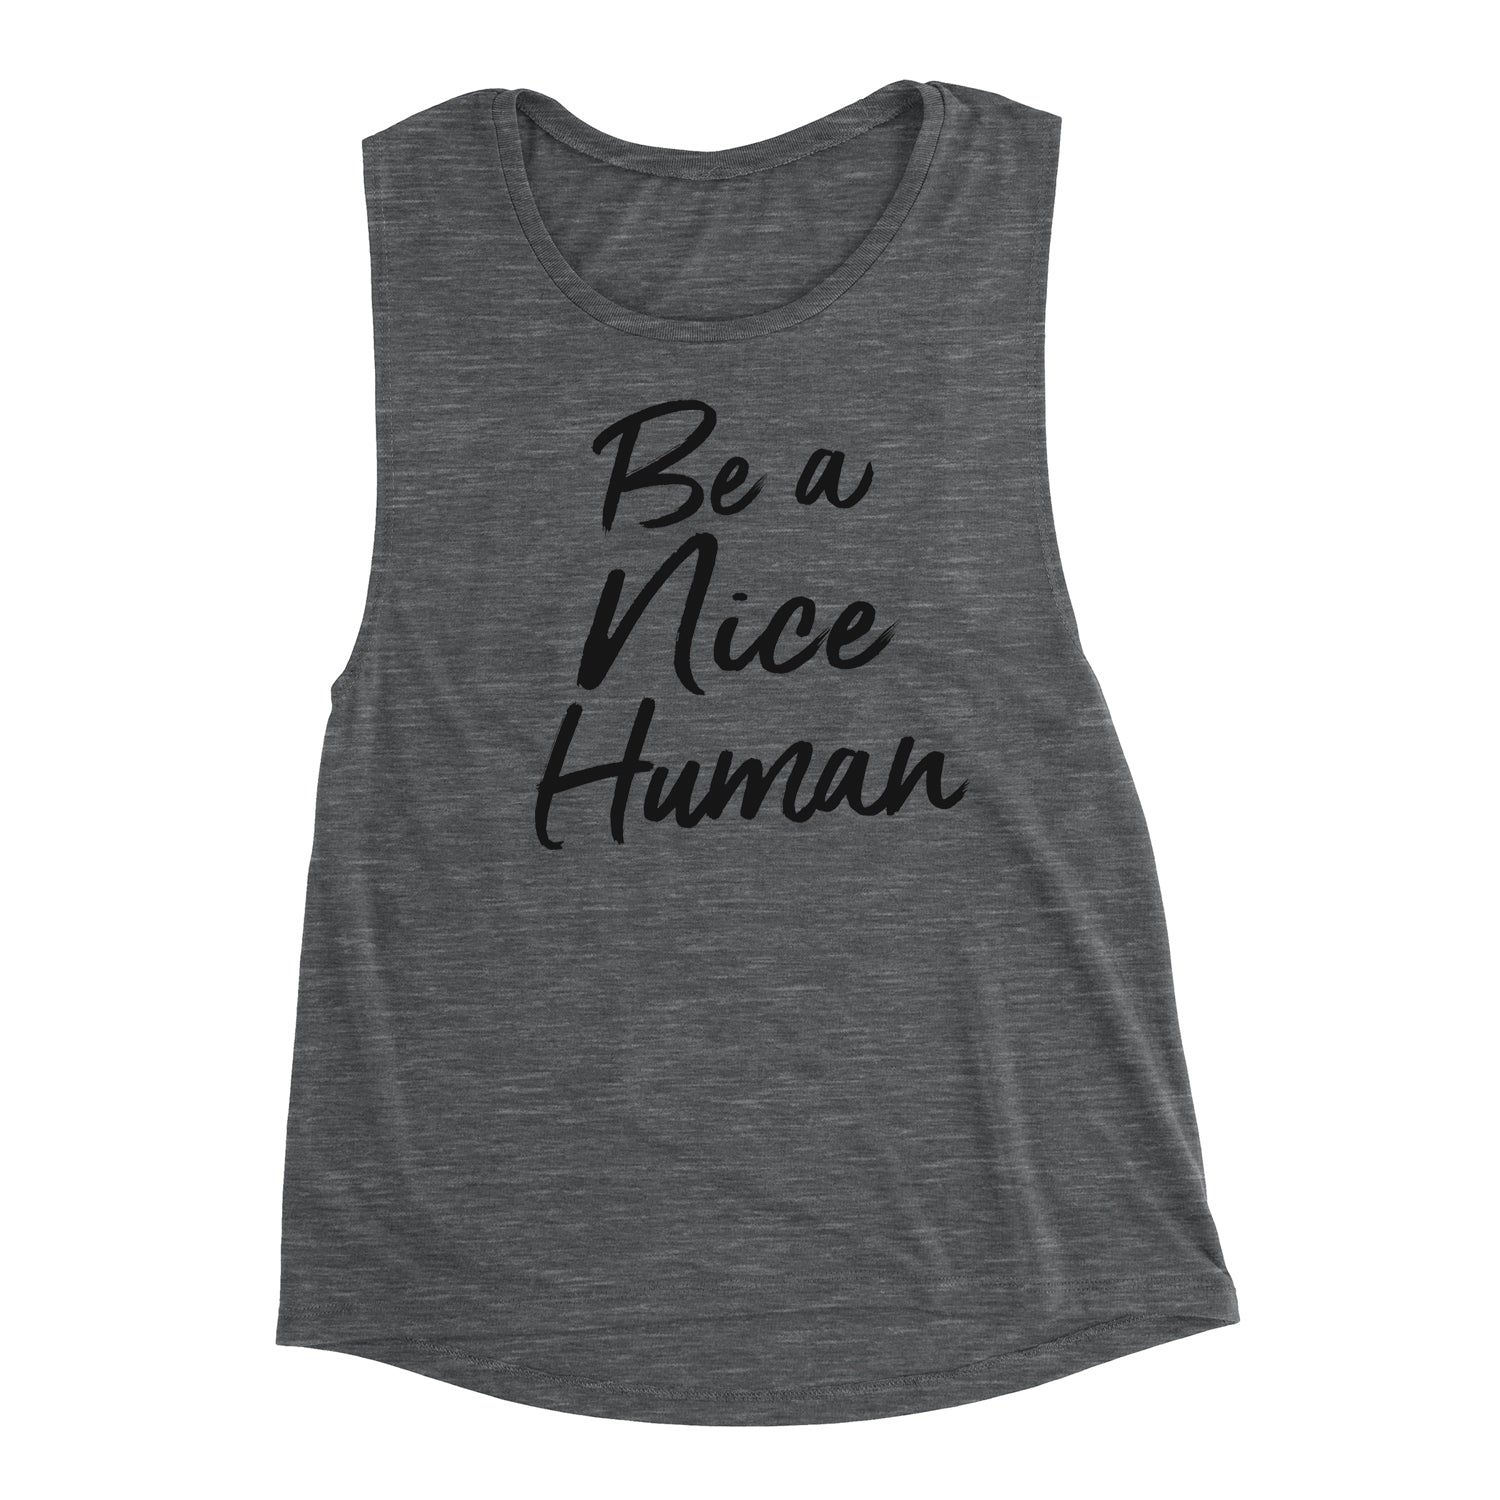 Be A Nice Human Muscle Tank Top. Yoga Tank. Be Nice. Be Kind. Kindness is Gangster. Workout Tank. Fitness Tank. Inspiration. Stop Bullying. Always Be Kind